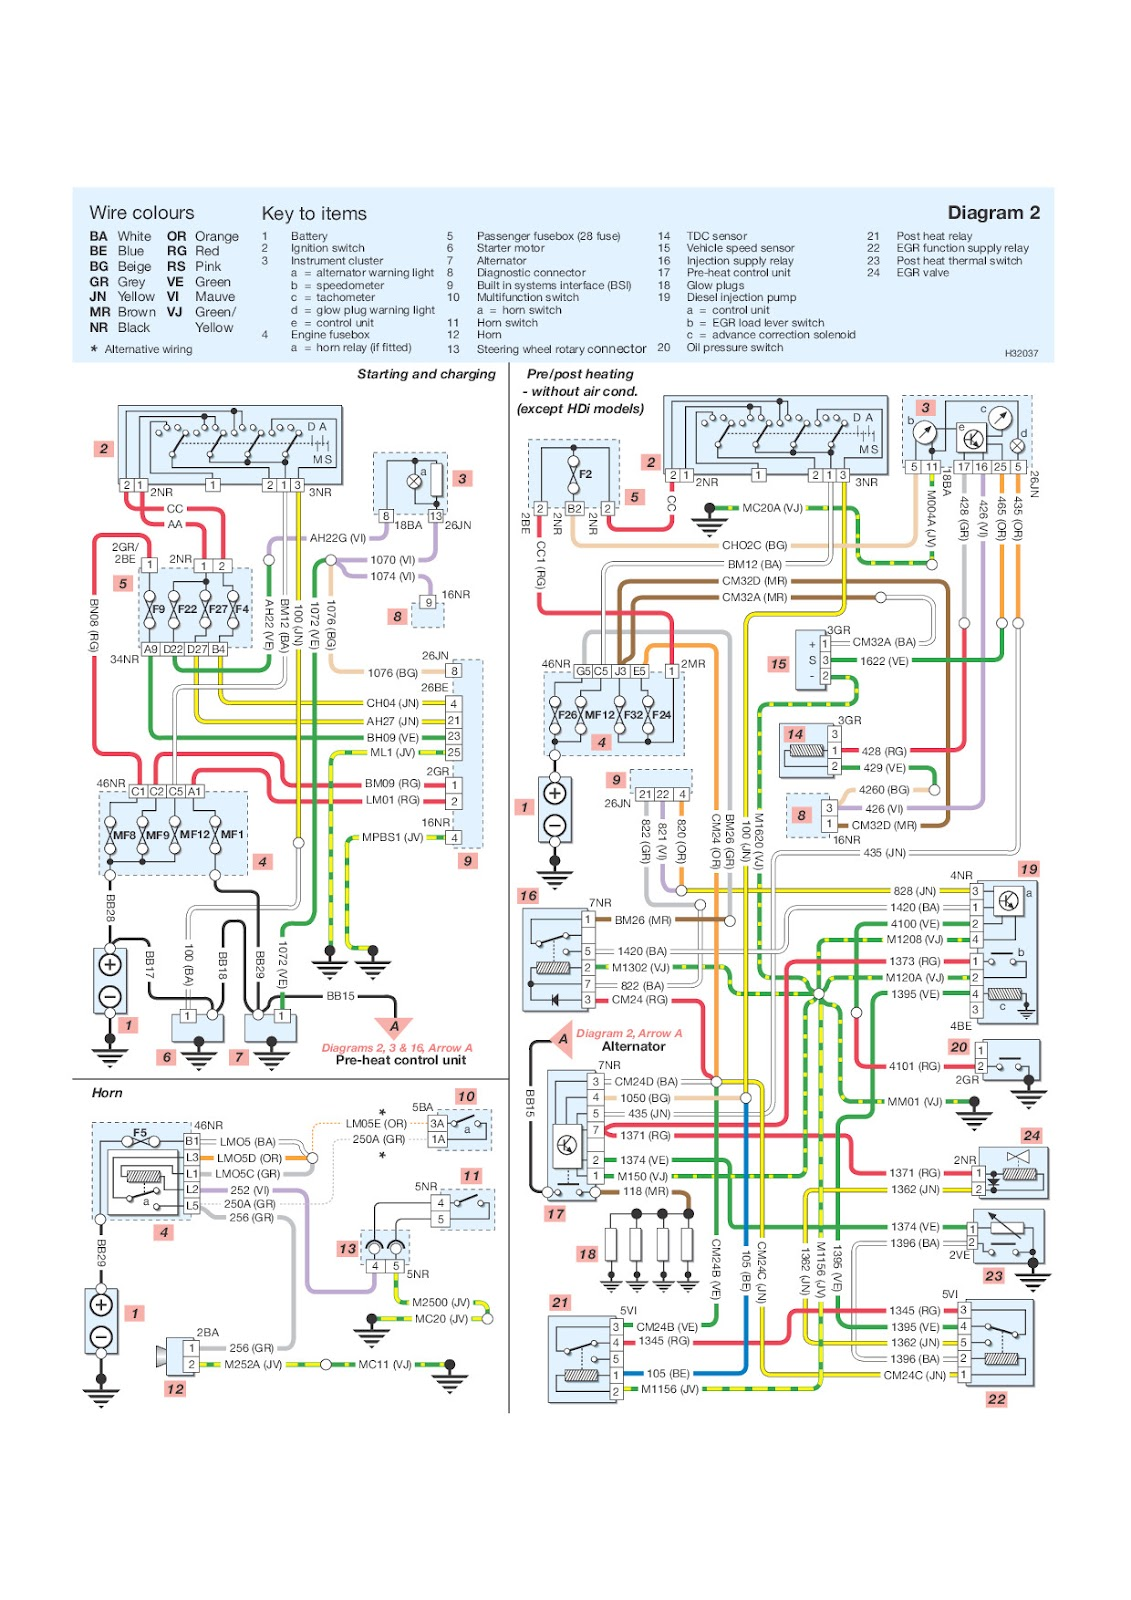 Your Wiring Diagrams Source: Peugeot 206 Starting, charging, horn,  pre/post-heating Wiring Diagrams